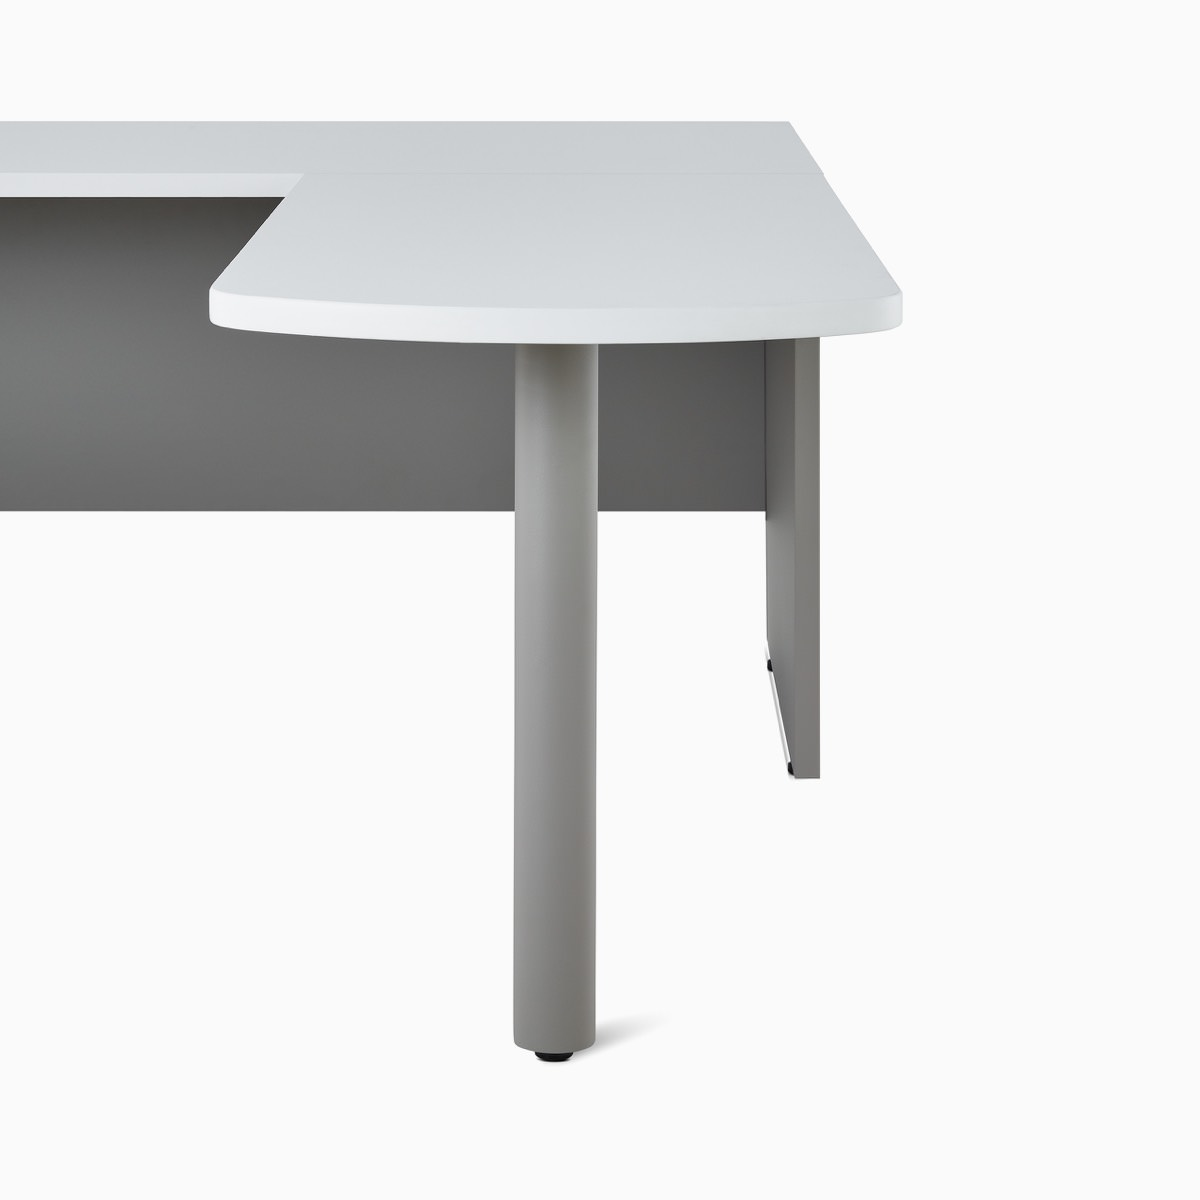 A Canvas Metal Desk white peninsula surface.